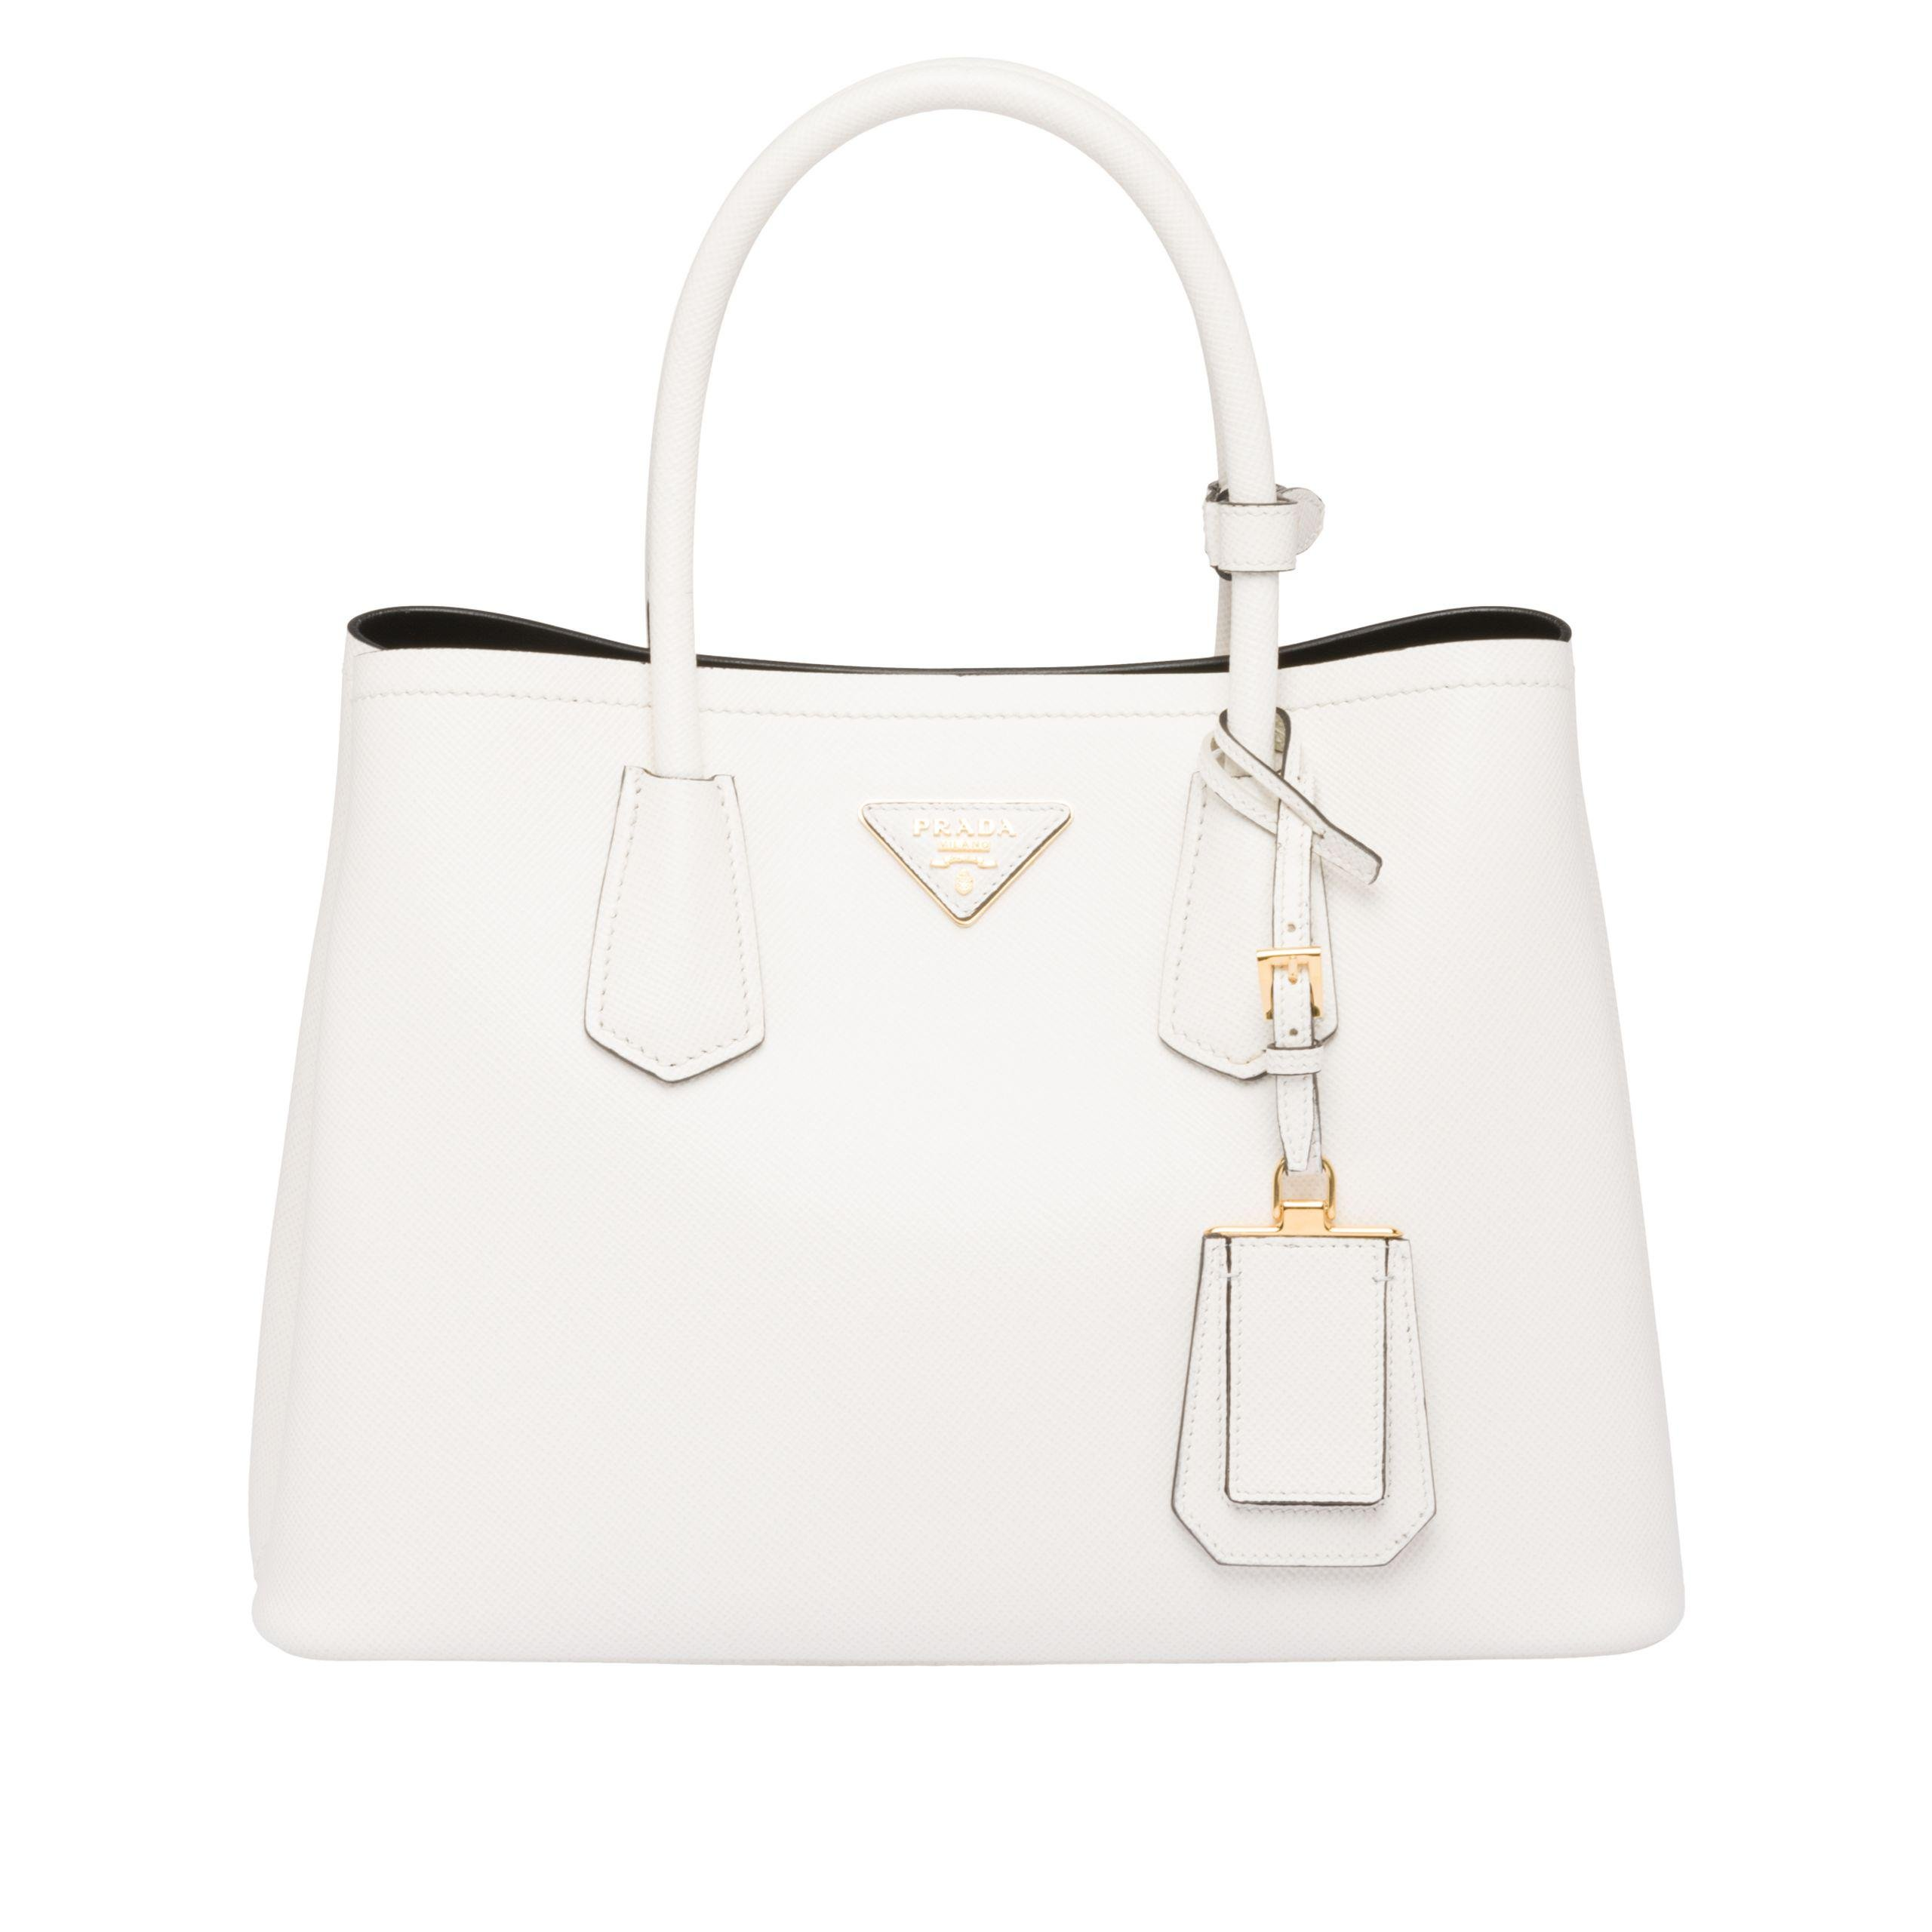 f241cb1185d Prada. Women's Double Small Bag. $2,590 From Orchard Mile